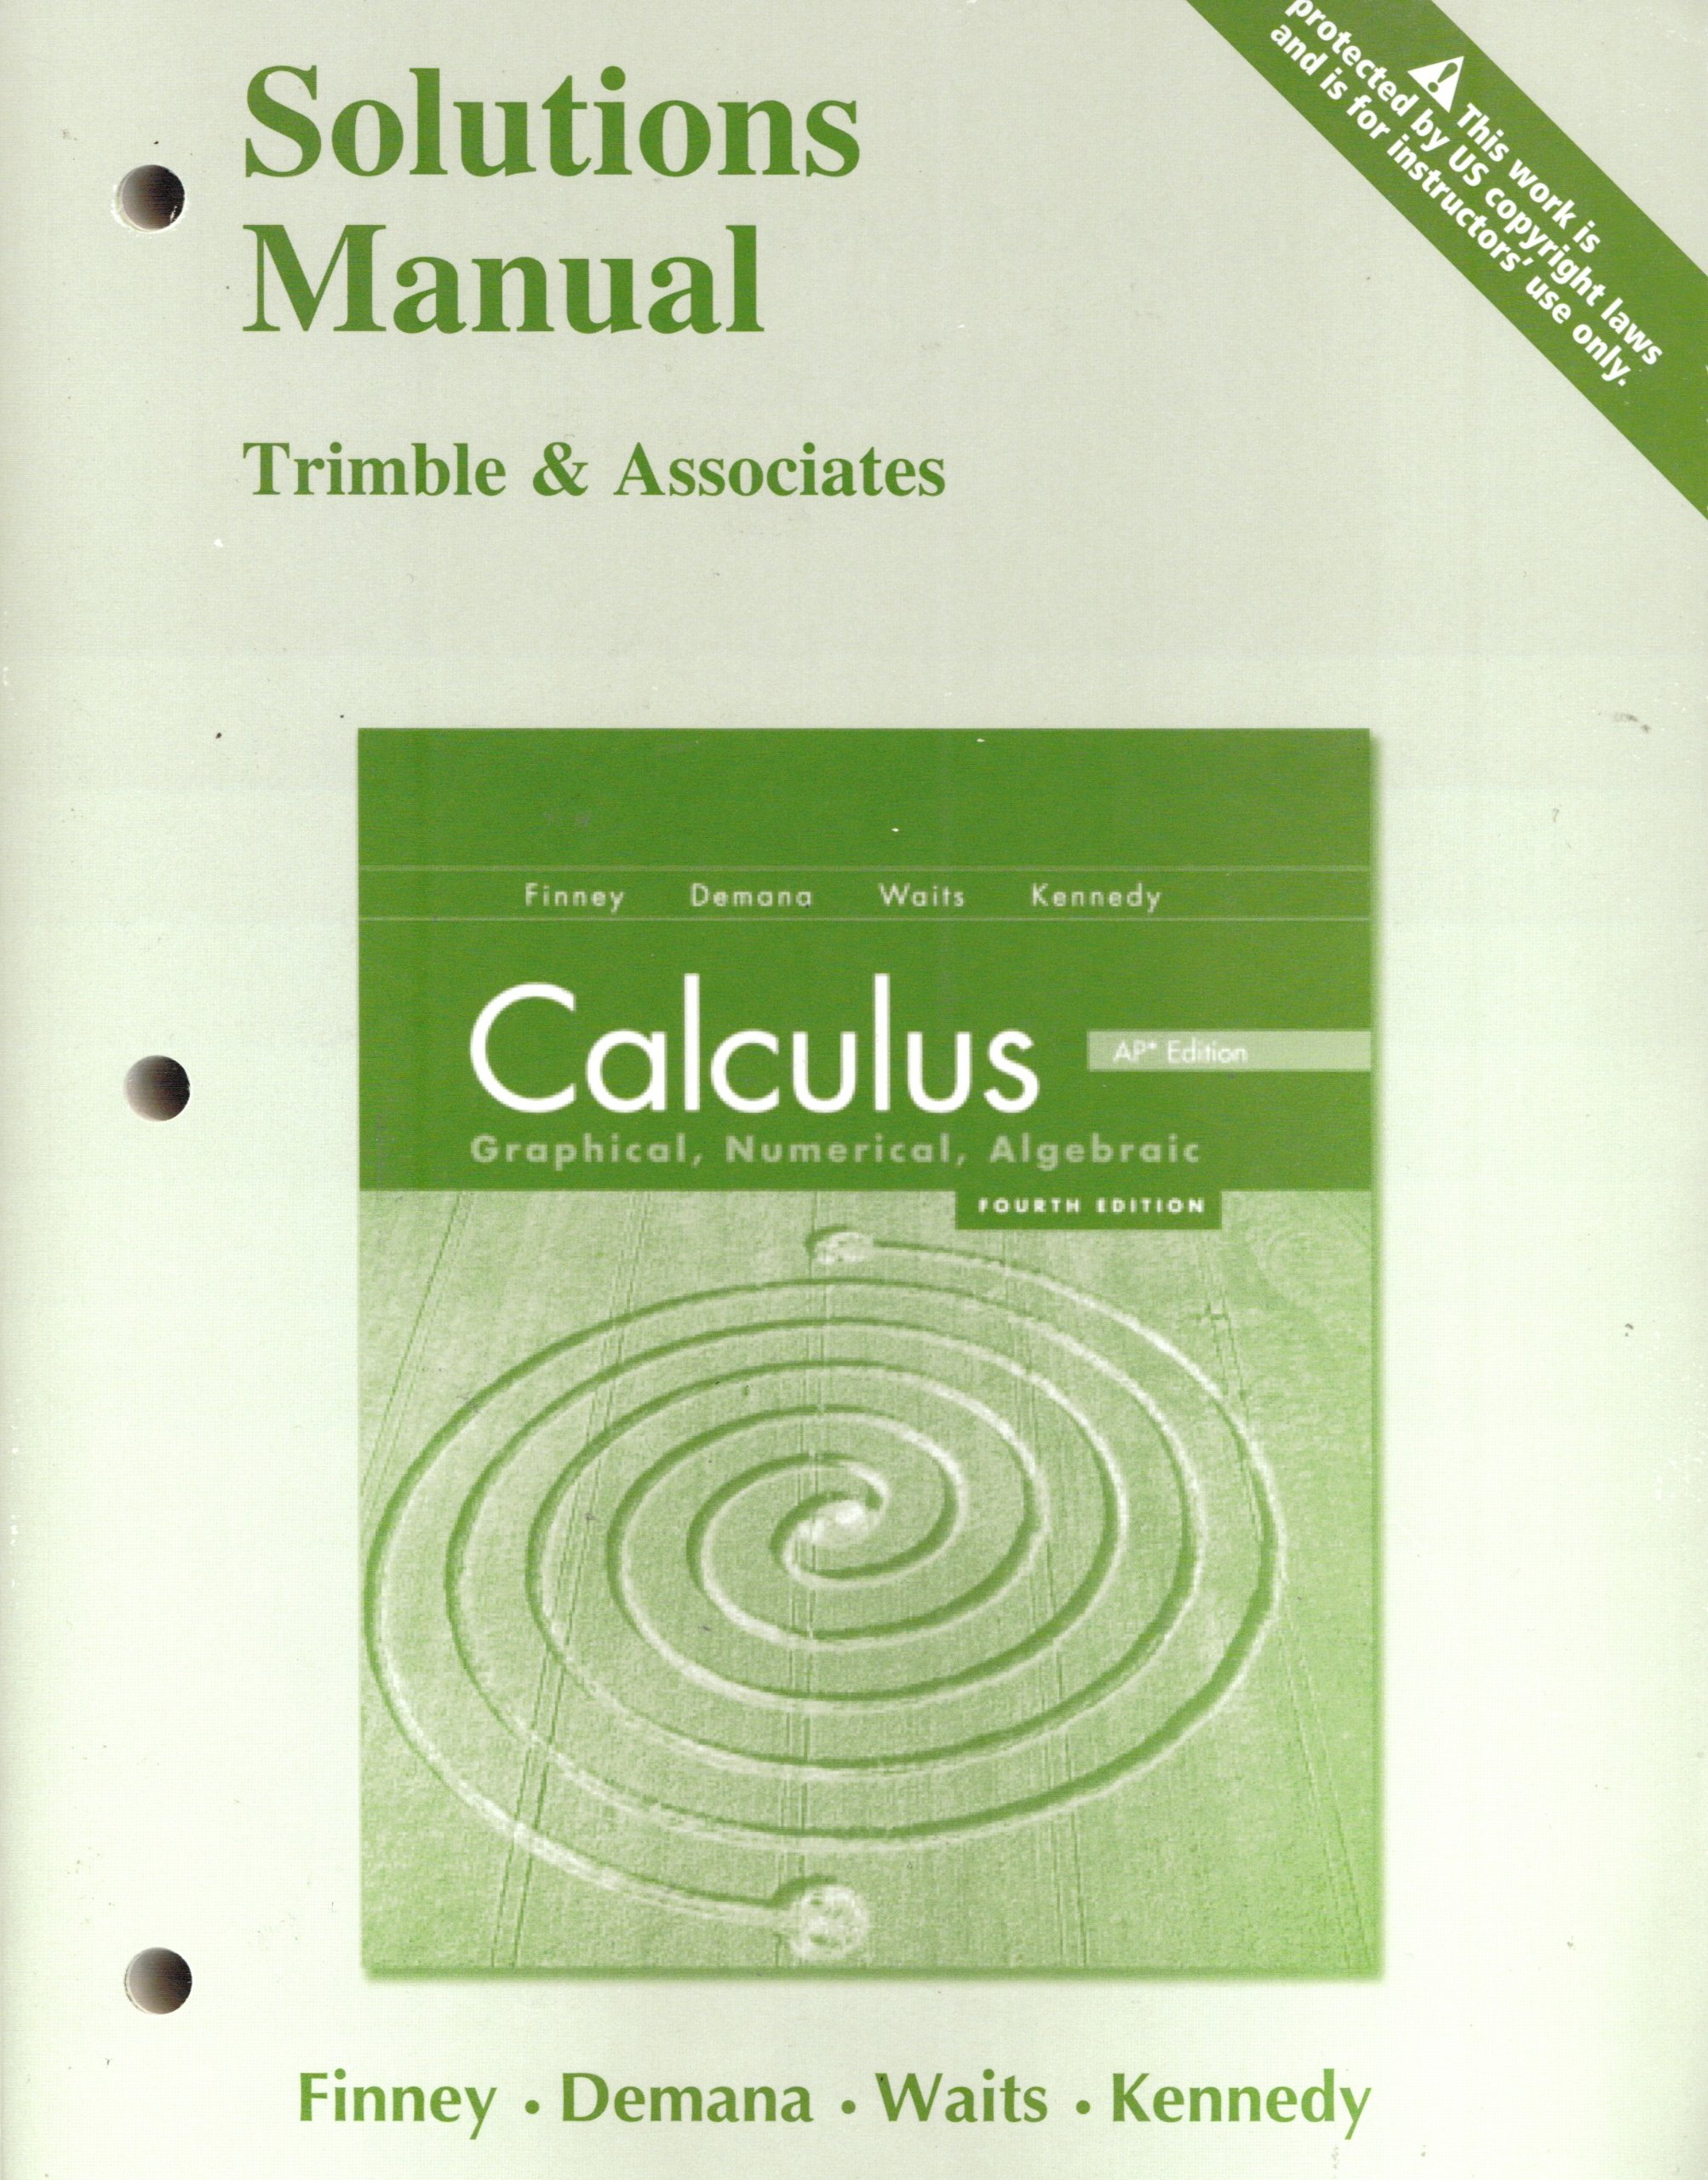 calculus graphical numerical algebraic solutions manual finney rh amazon com calculus graphical numerical algebraic 5th edition solution manual calculus graphical numerical algebraic 5th edition solution manual